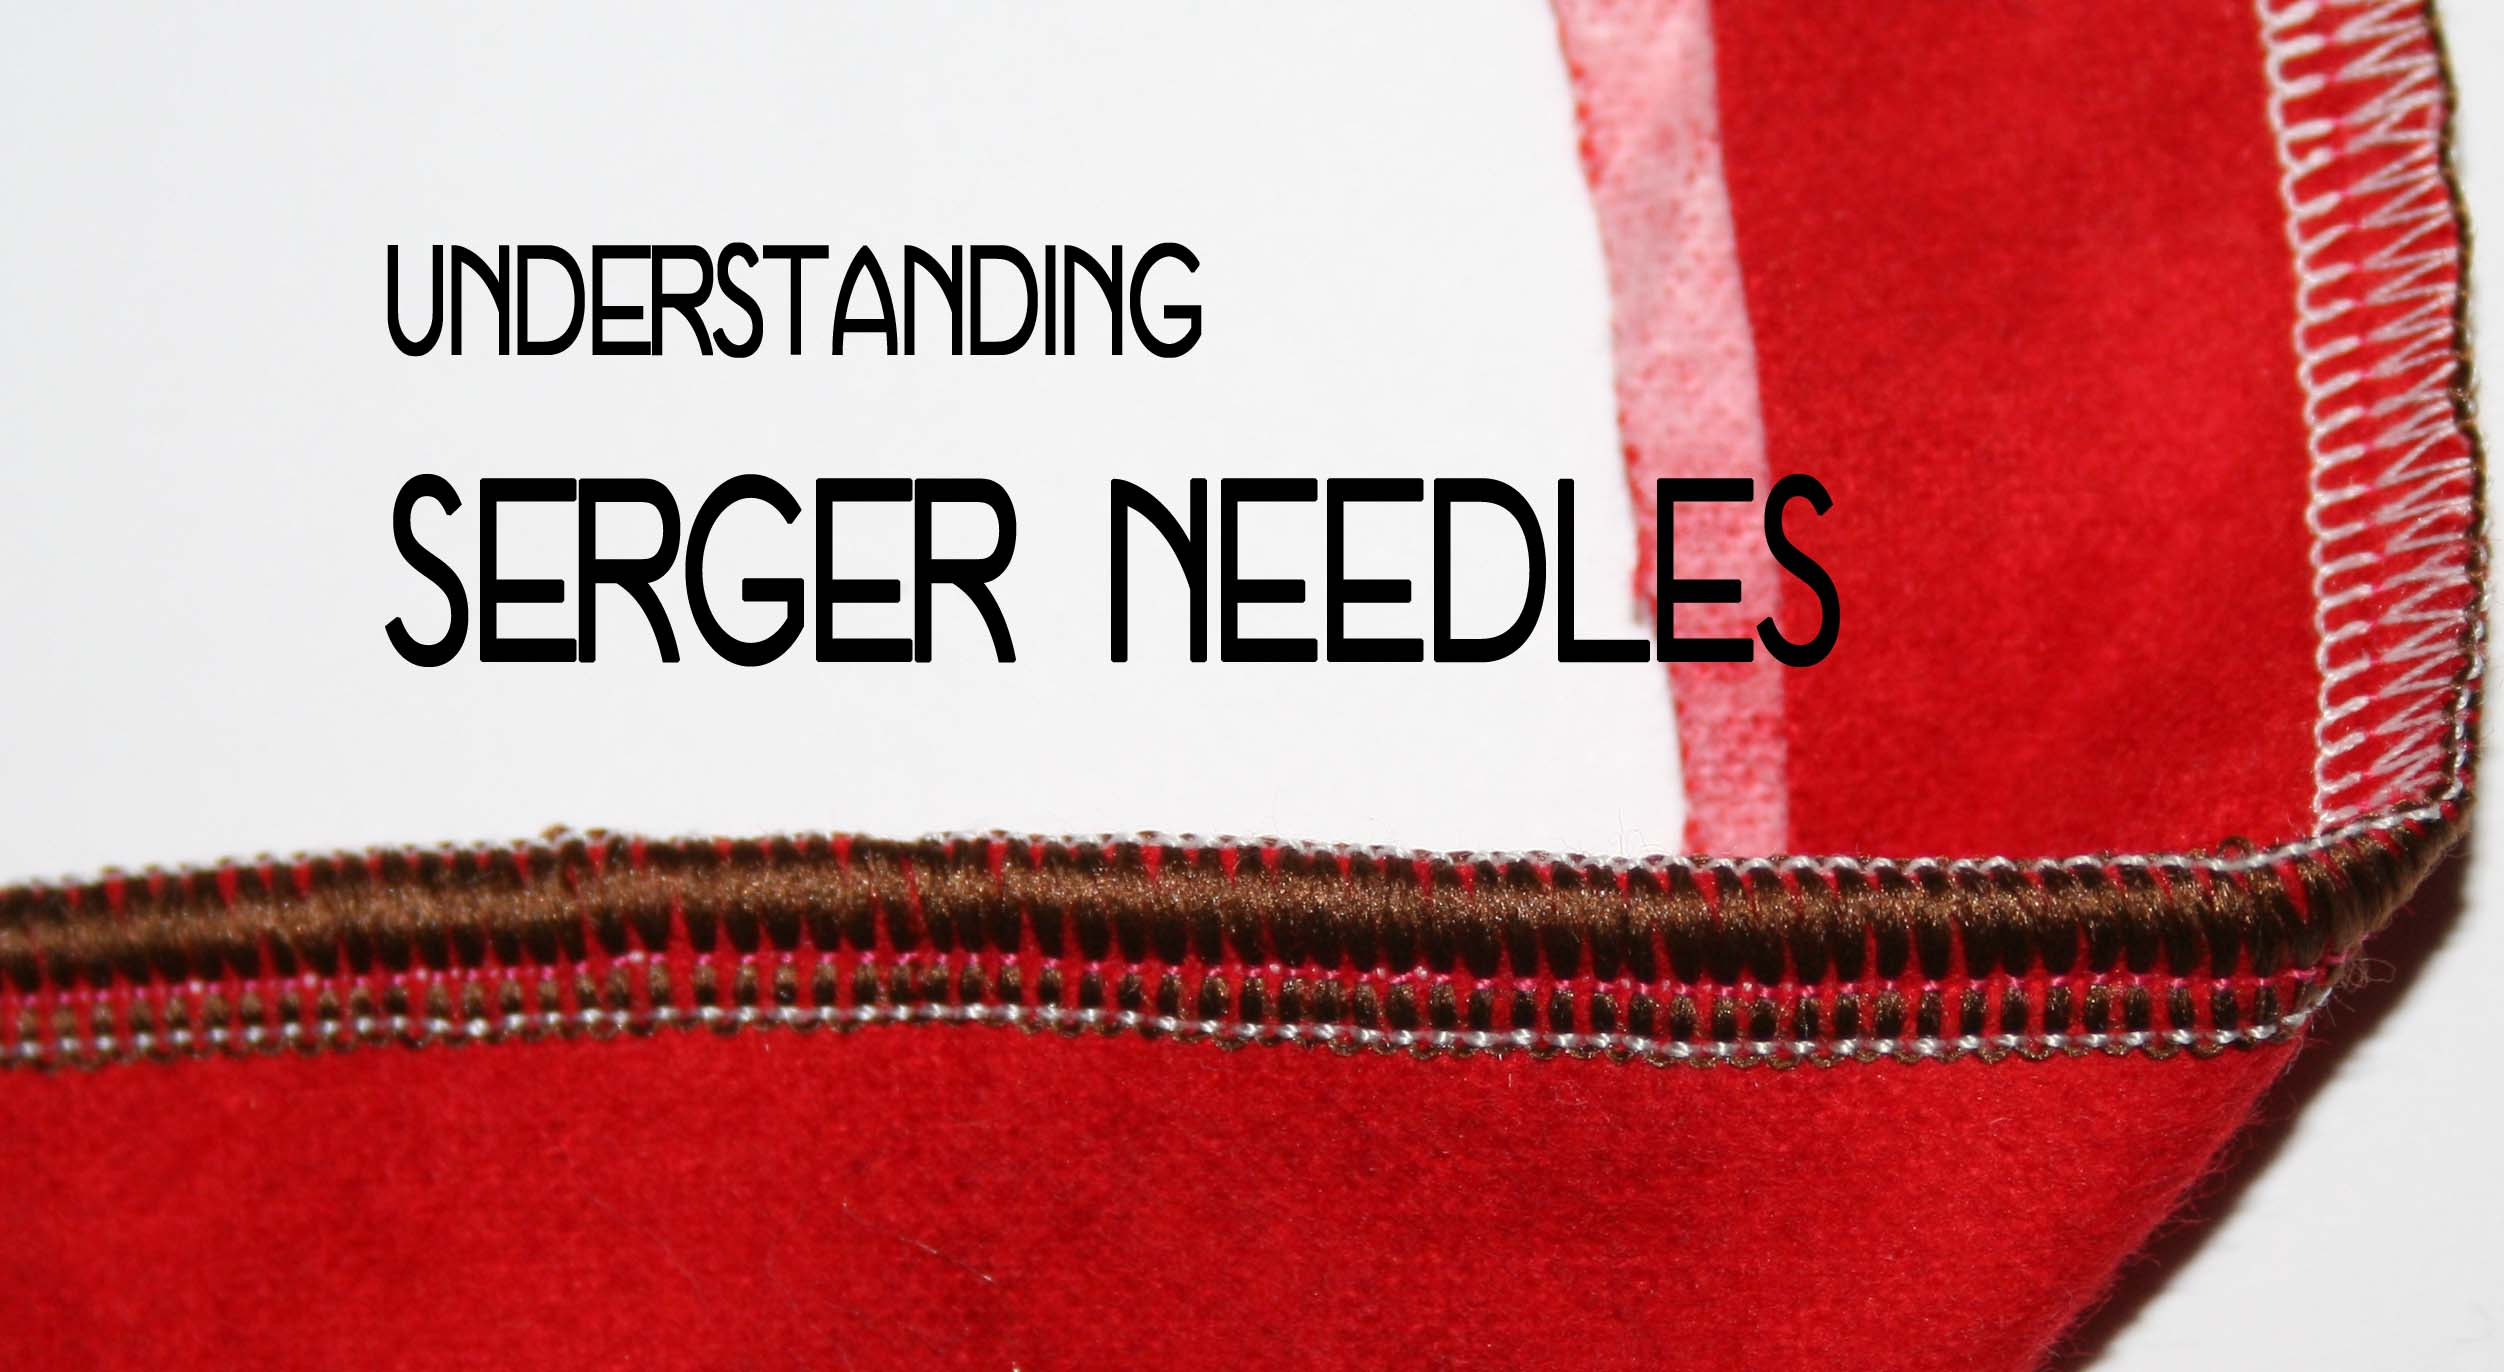 Serger Needles